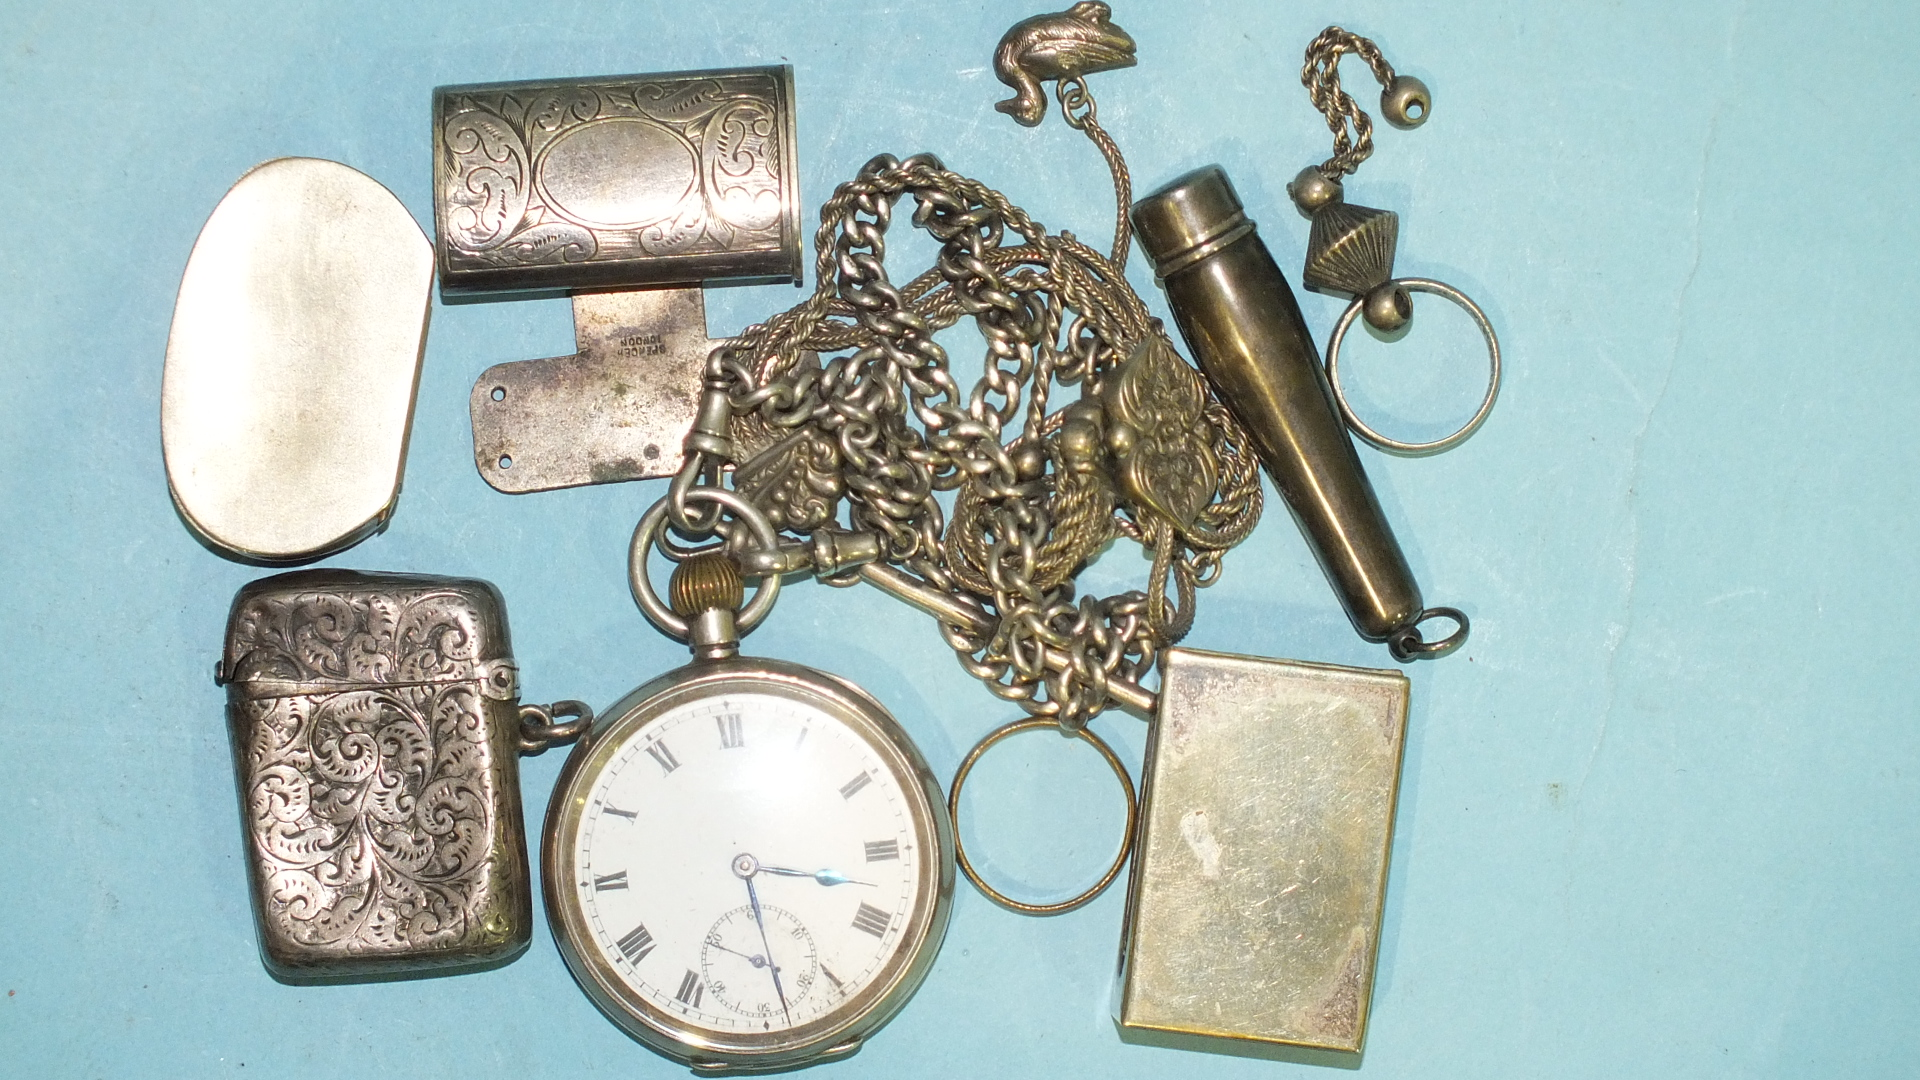 Lot 321 - A silver-cased open-face pocket watch, (not working), on silver curb-link watch chain, a silver